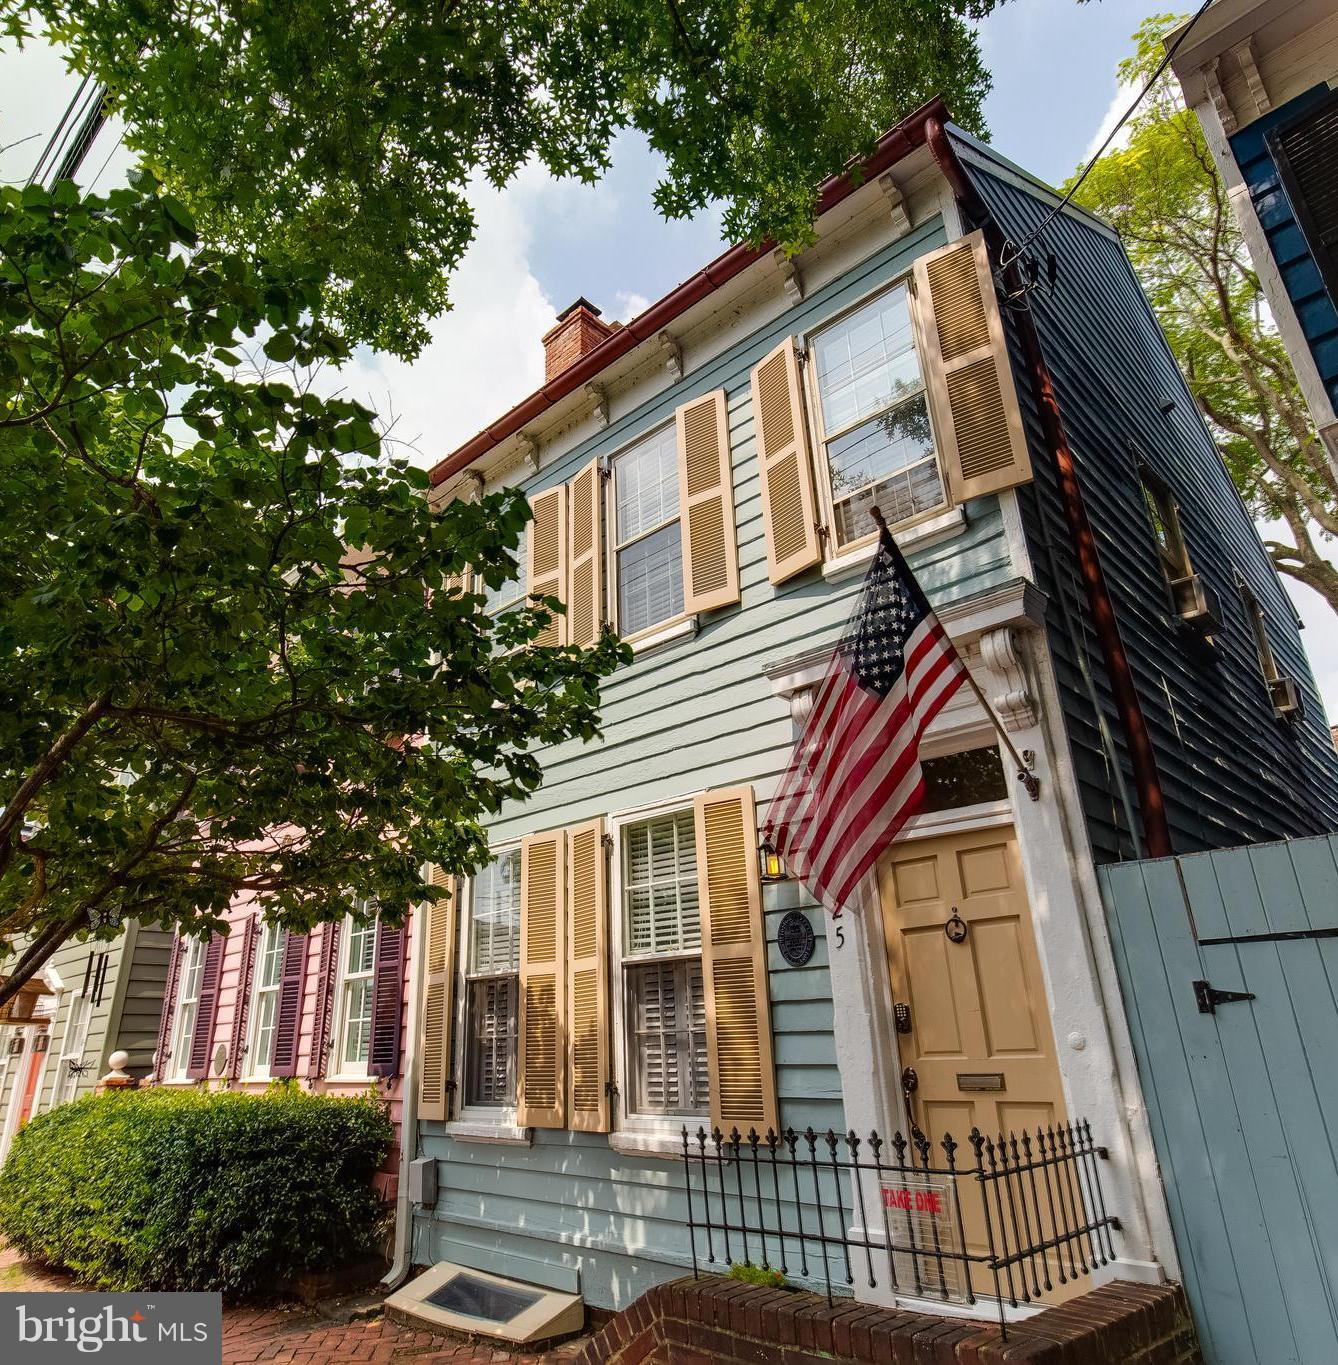 Historic row house in the heart of Old Town.  The  original heart pine floors, fireplace, and  exposed brick reflect  the character of the home.  A beautifully renovated kitchen with farm sink and tile backsplash as well as a gorgeous spa-like master bath bring it into the 21st century.  Enjoy some warm cider around a fire-pit in the  large,  bricked courtyard urrounded by mature trees and access to street.  The custom whiskey bar on the lower level is also a  wonderful gathering place. Just a short walk to all the shops and restaurants, waterfront, metro, and all that Old Town has to offer.***Check out the 3D tour of this home!